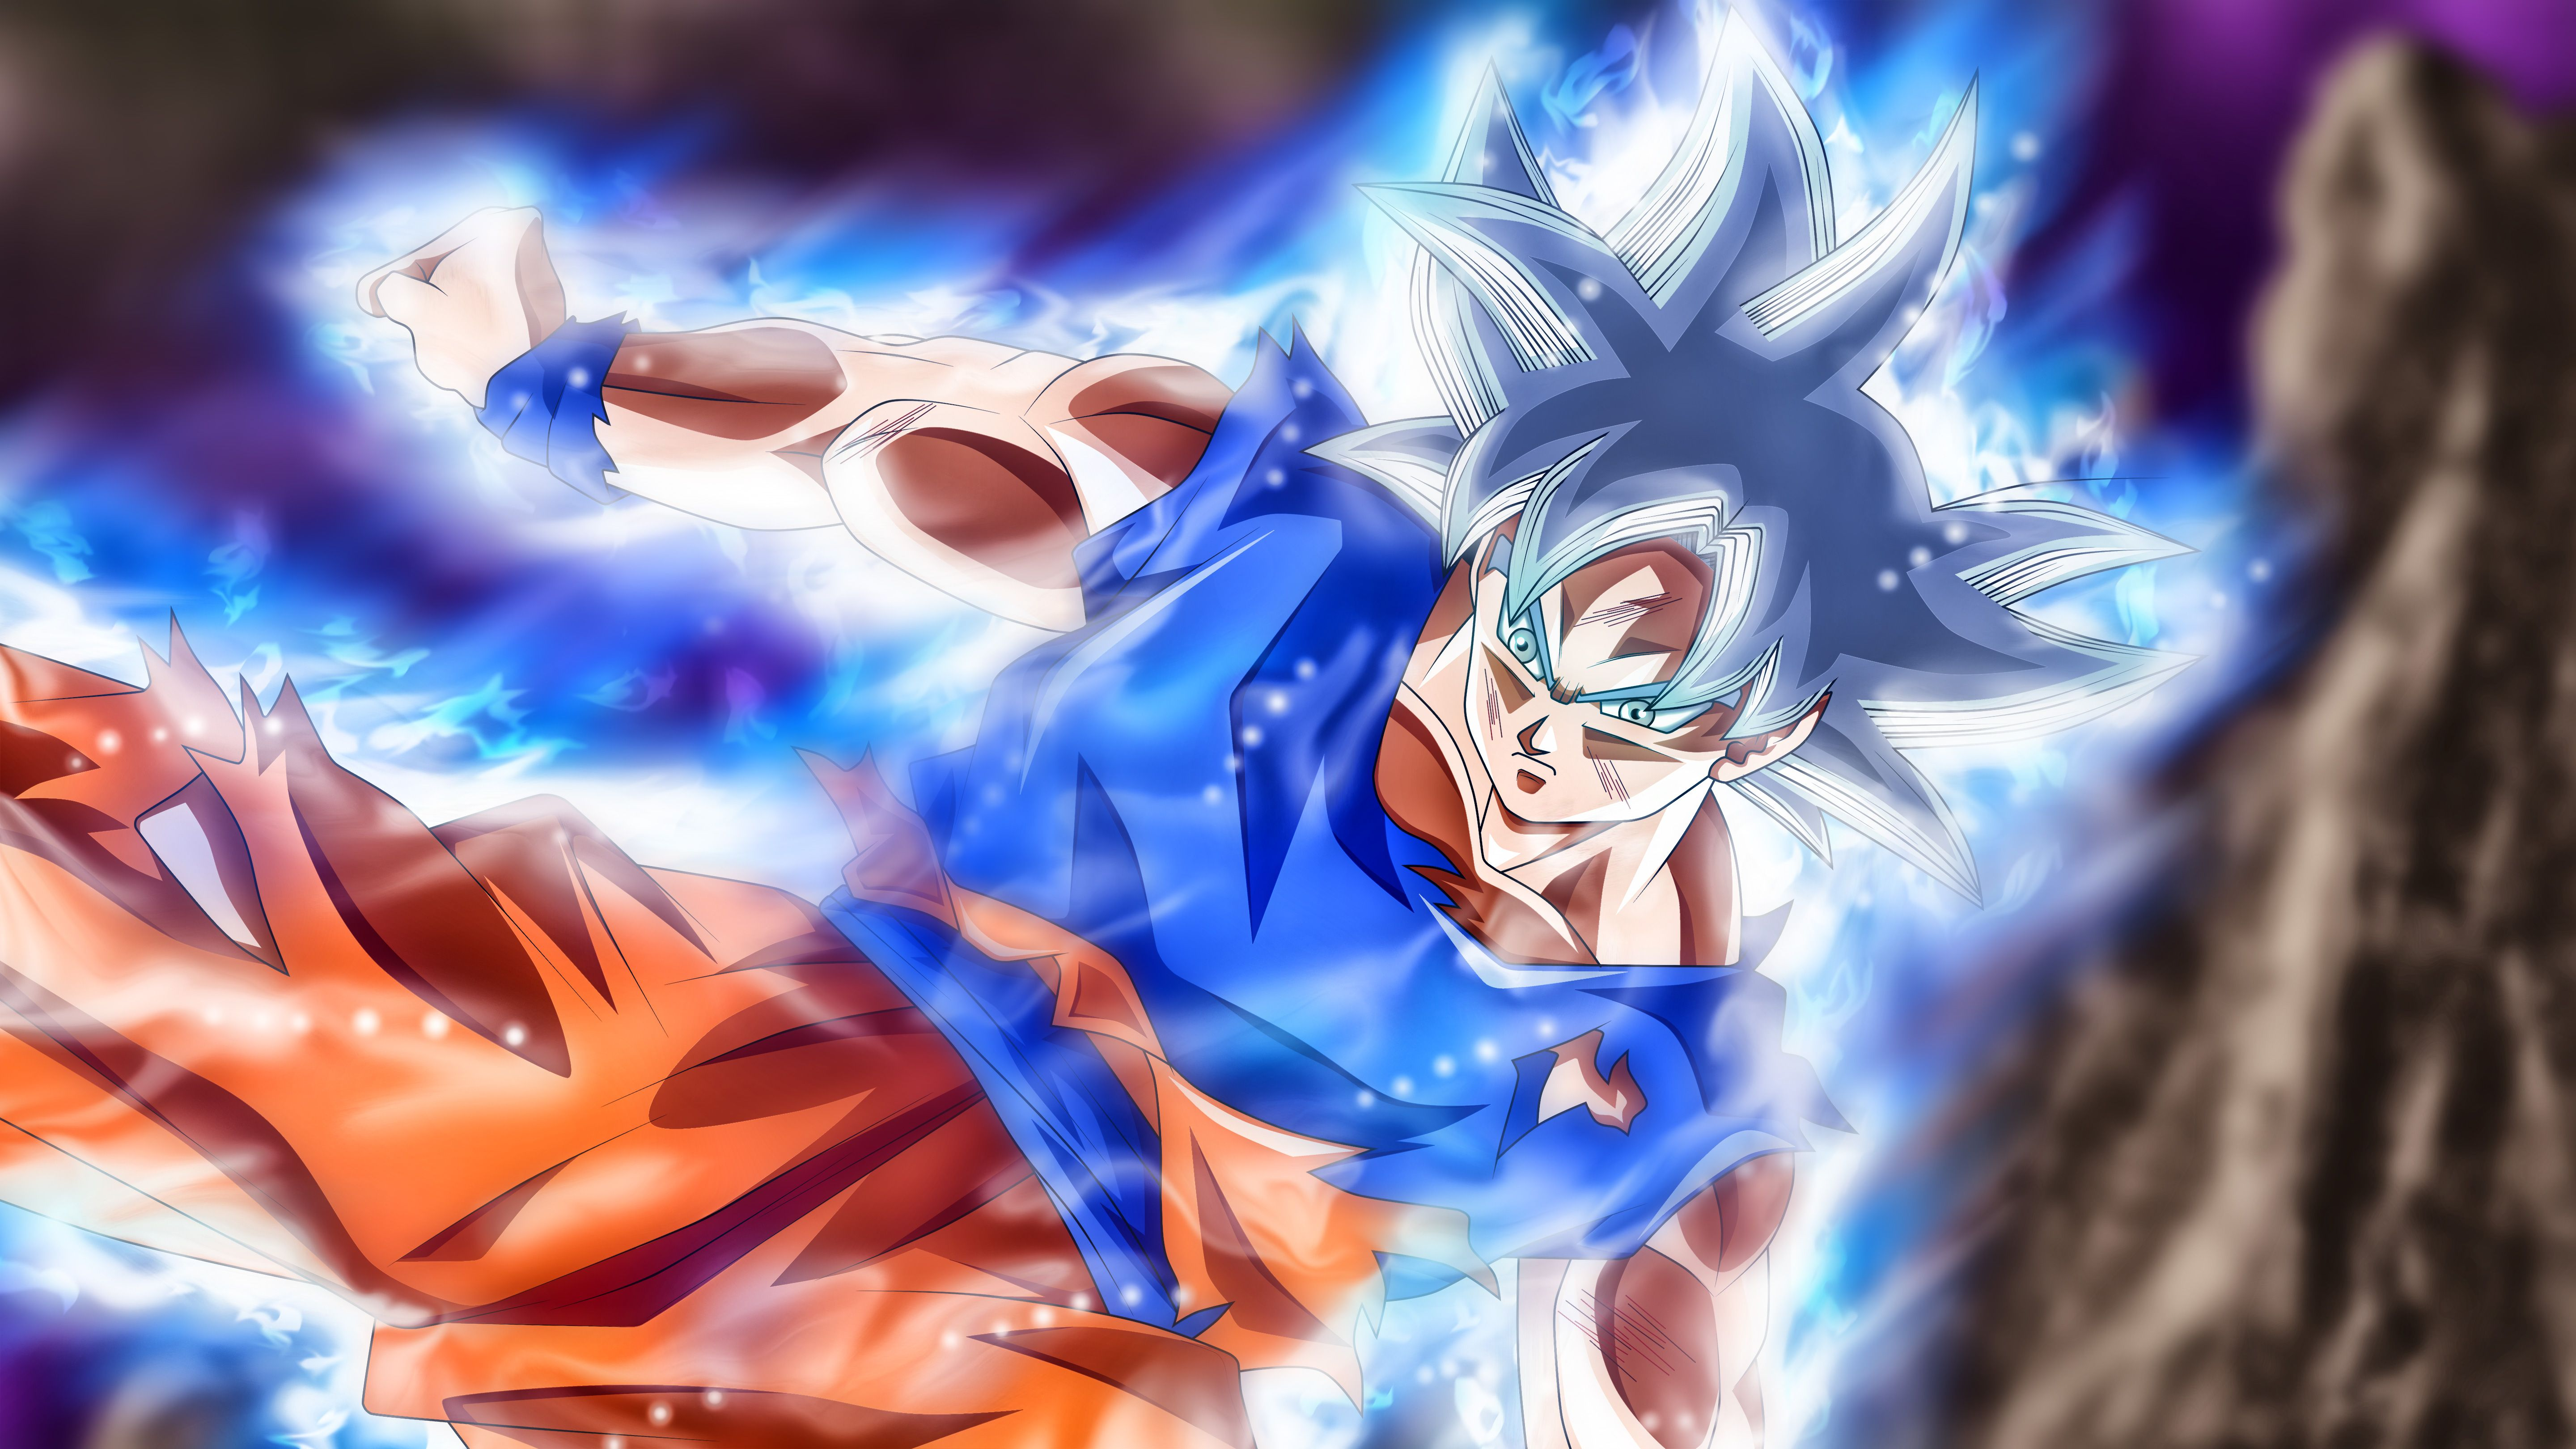 goku ultra instinct wallpaper 4k, ultra instinct goku desktop wallpaper